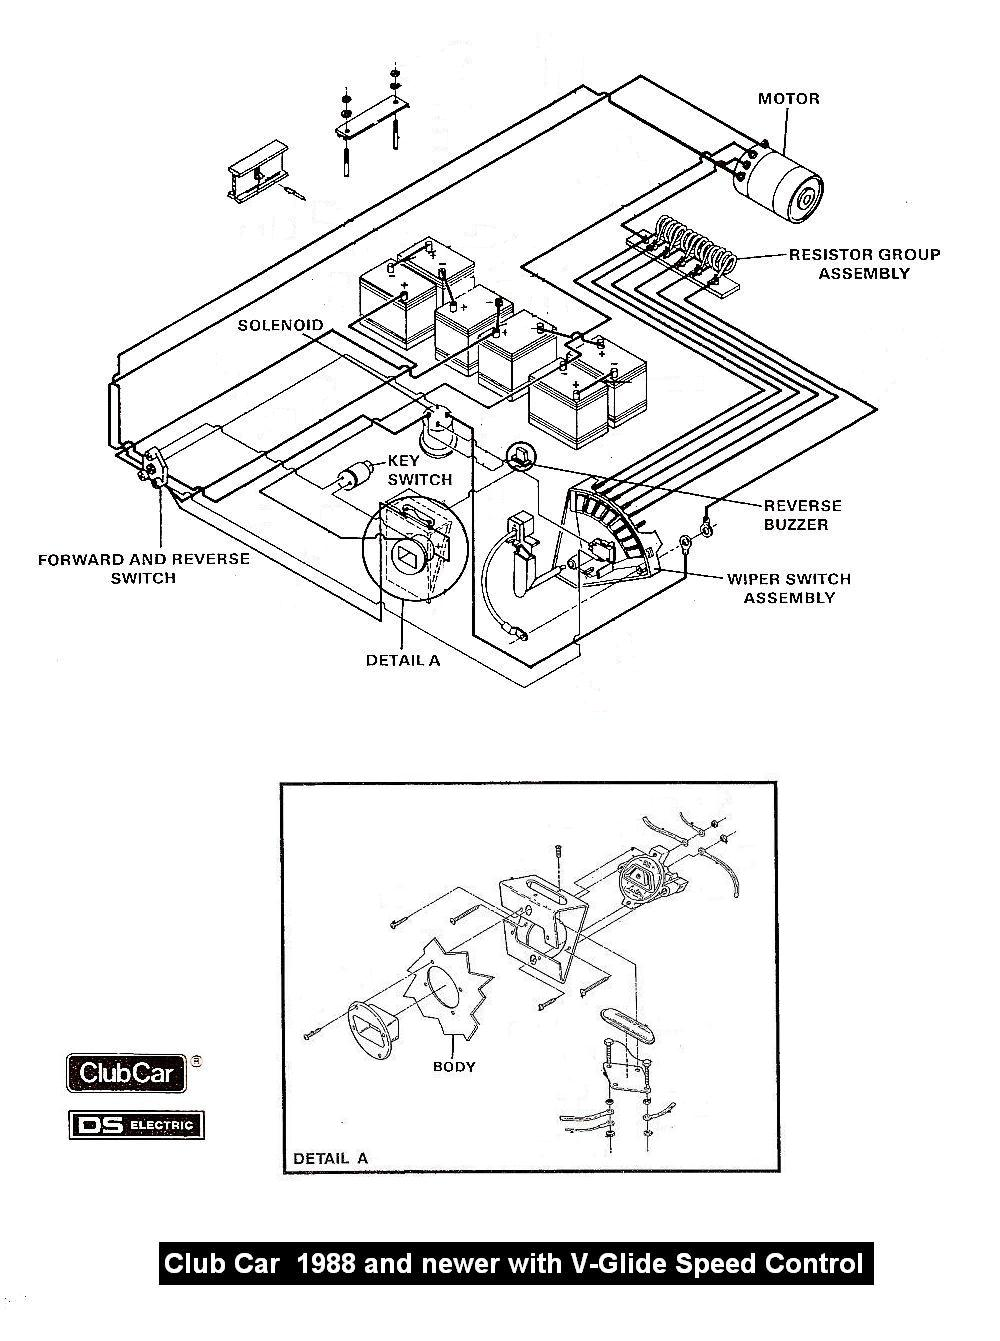 hight resolution of 1979 club car schematic diagram simple wiring schema for 48 volt club car golf cart wiring diagram club car gas golf cart wiring diagram